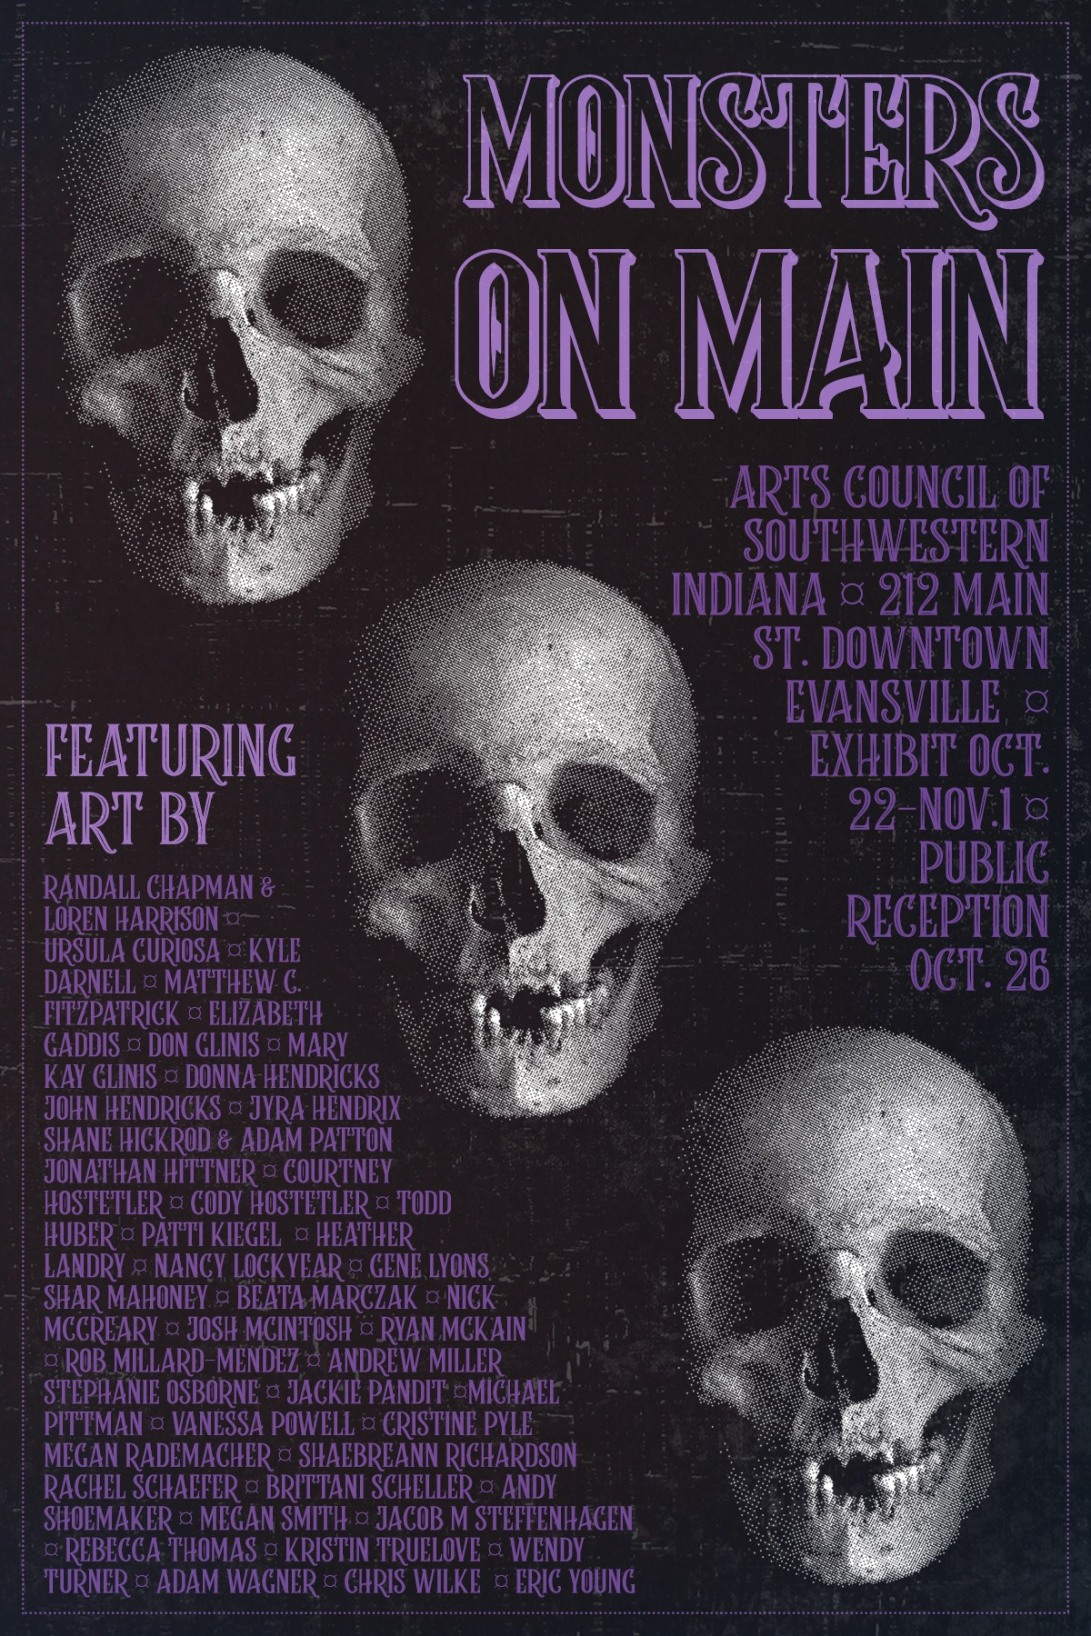 The show poster for Monsters on Main, a monster themed art show held by the Arts Council of Southwestern Indiana in autumn 2019